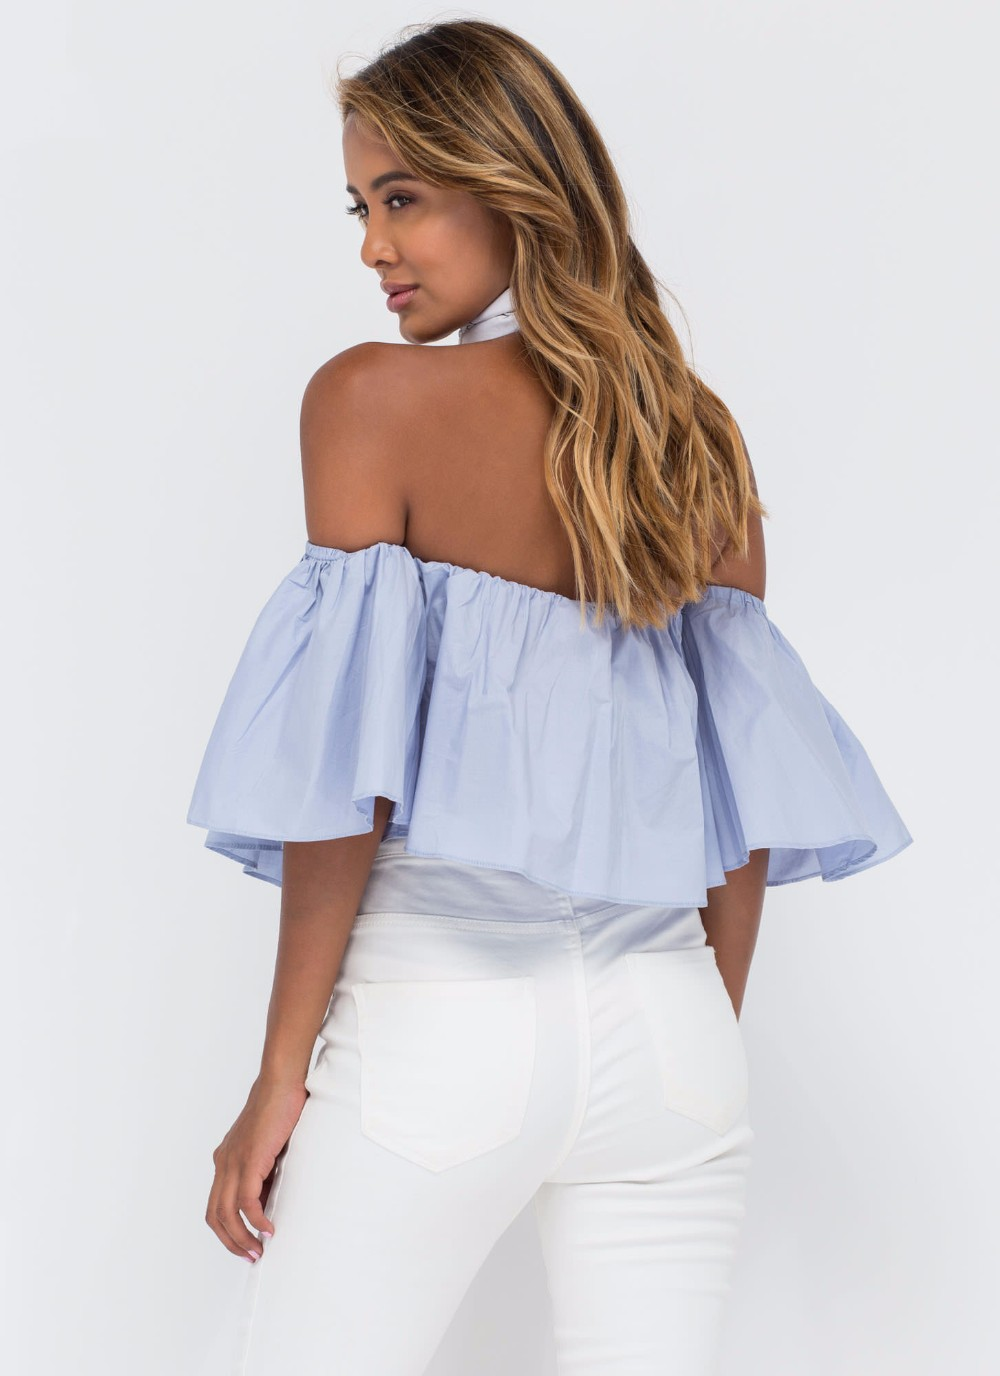 HTB1RFCXNFXXXXakXpXXq6xXFXXX4 - T shirt women butterfly sleeve off the shoulder crop top 2017